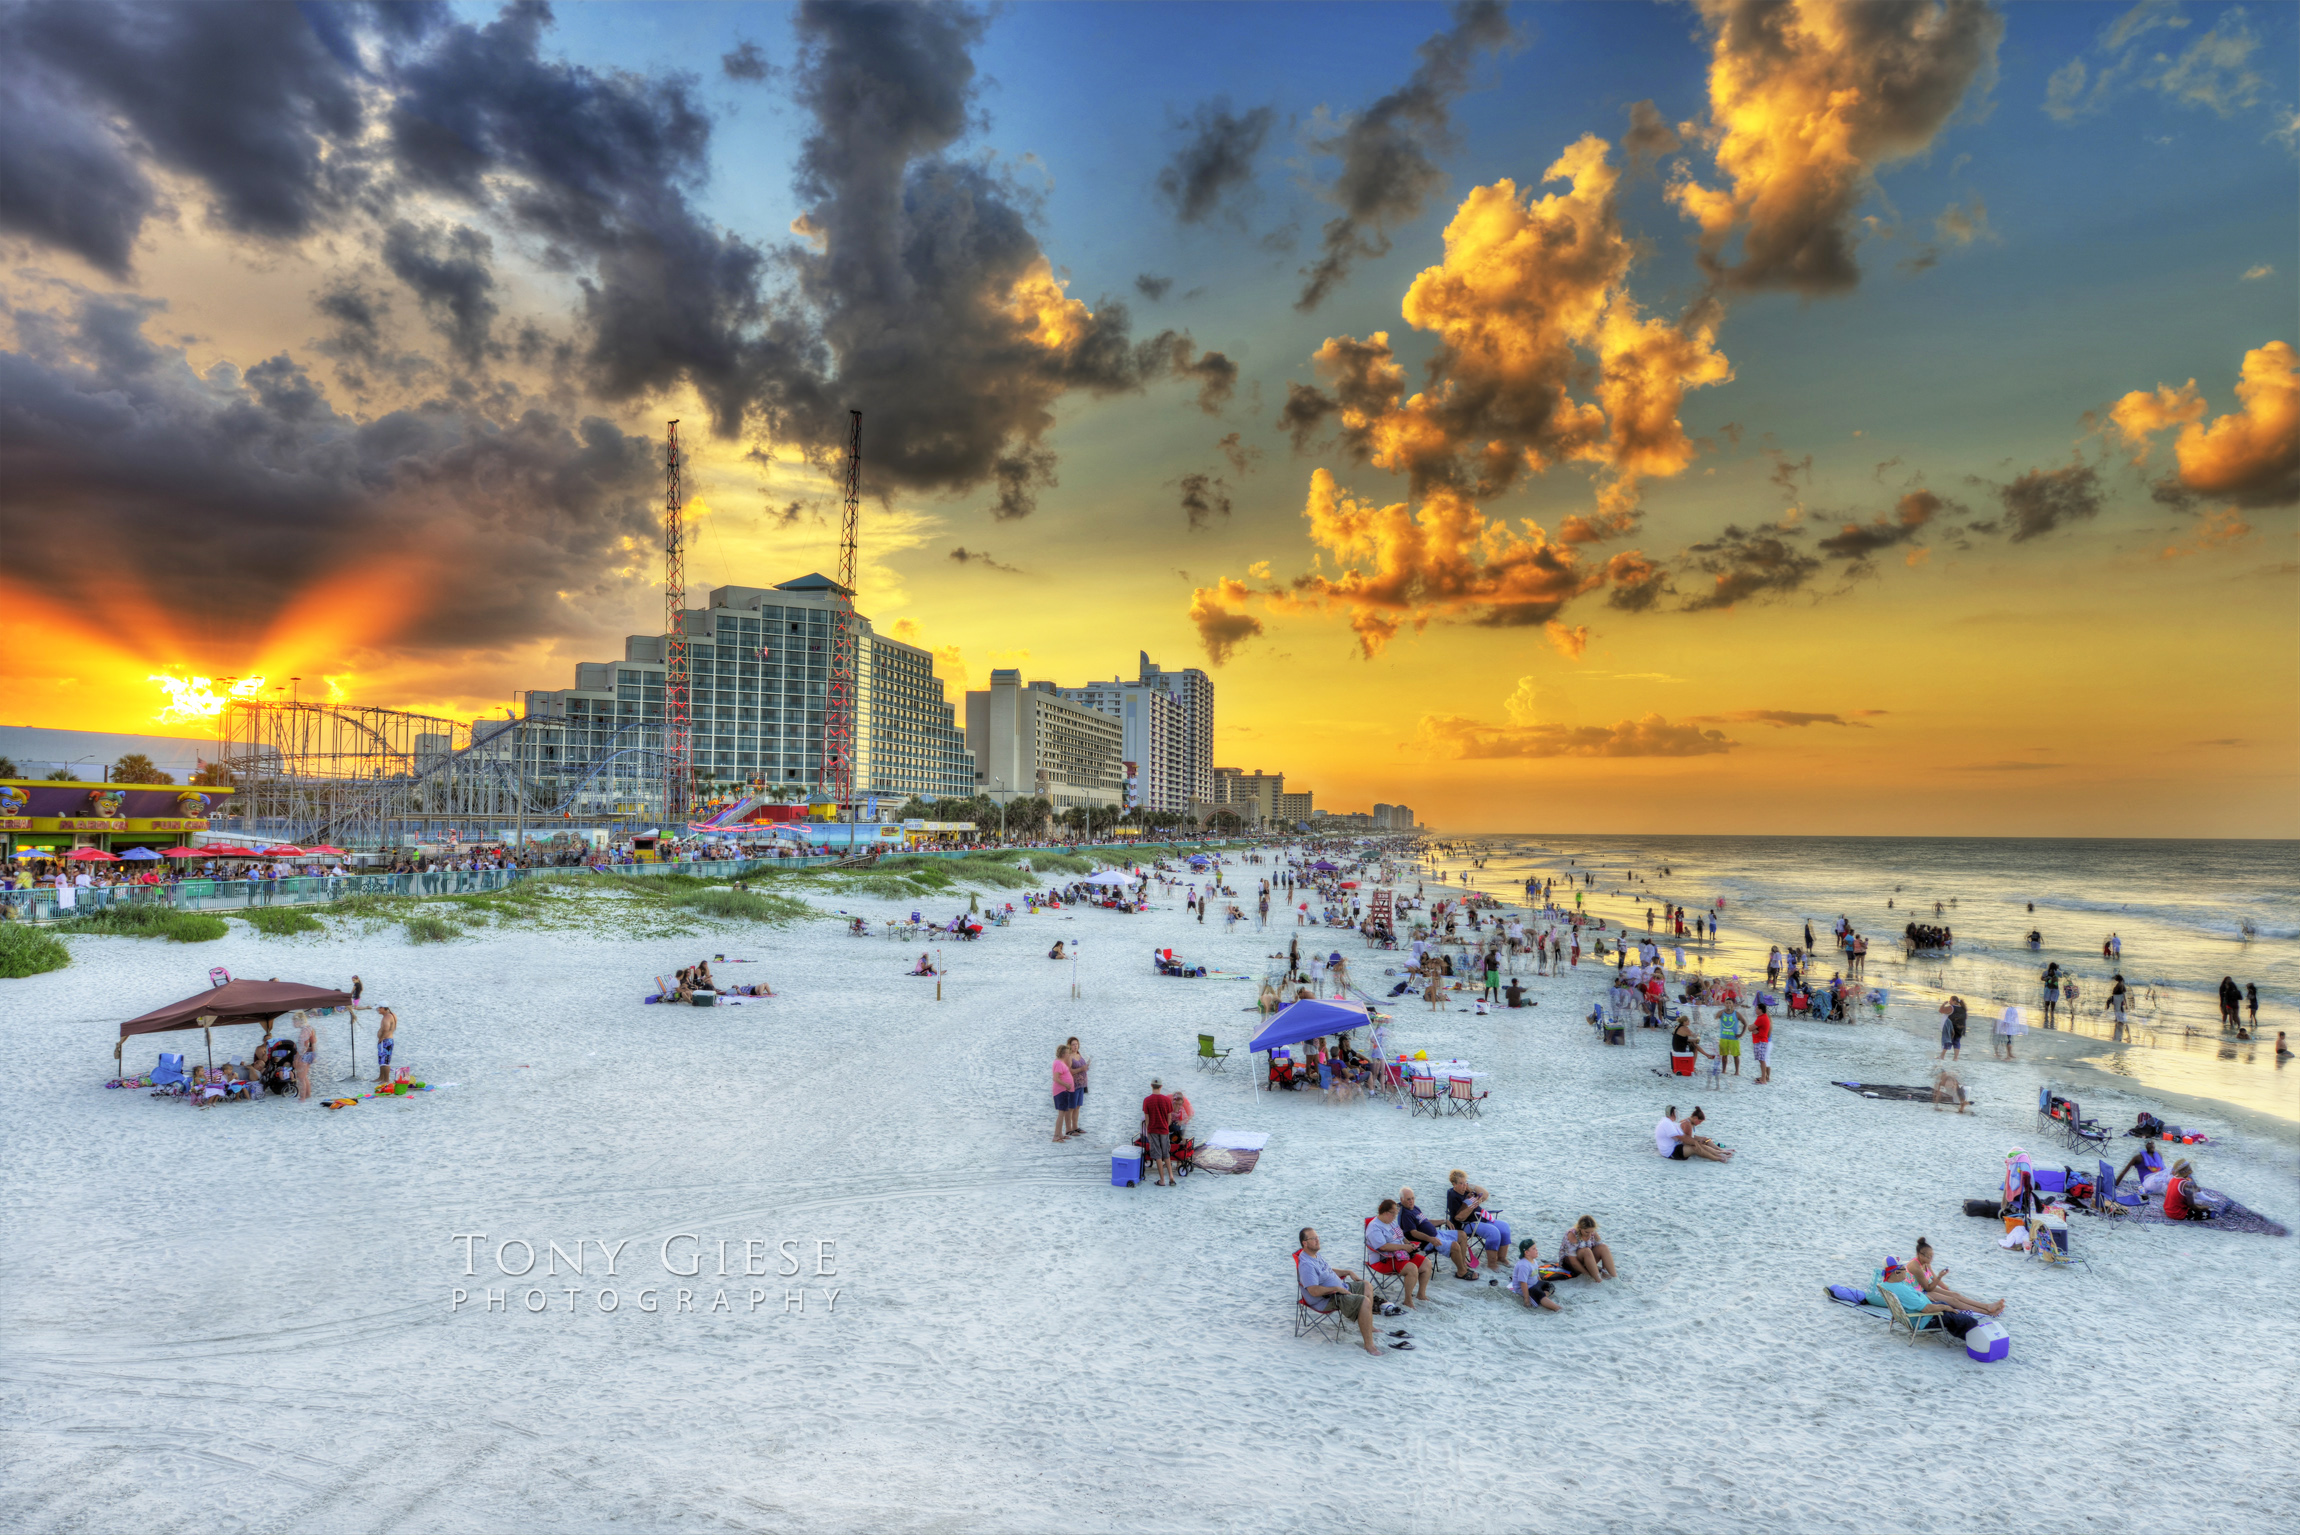 Beach goers enjoy Daytona Beach white sands